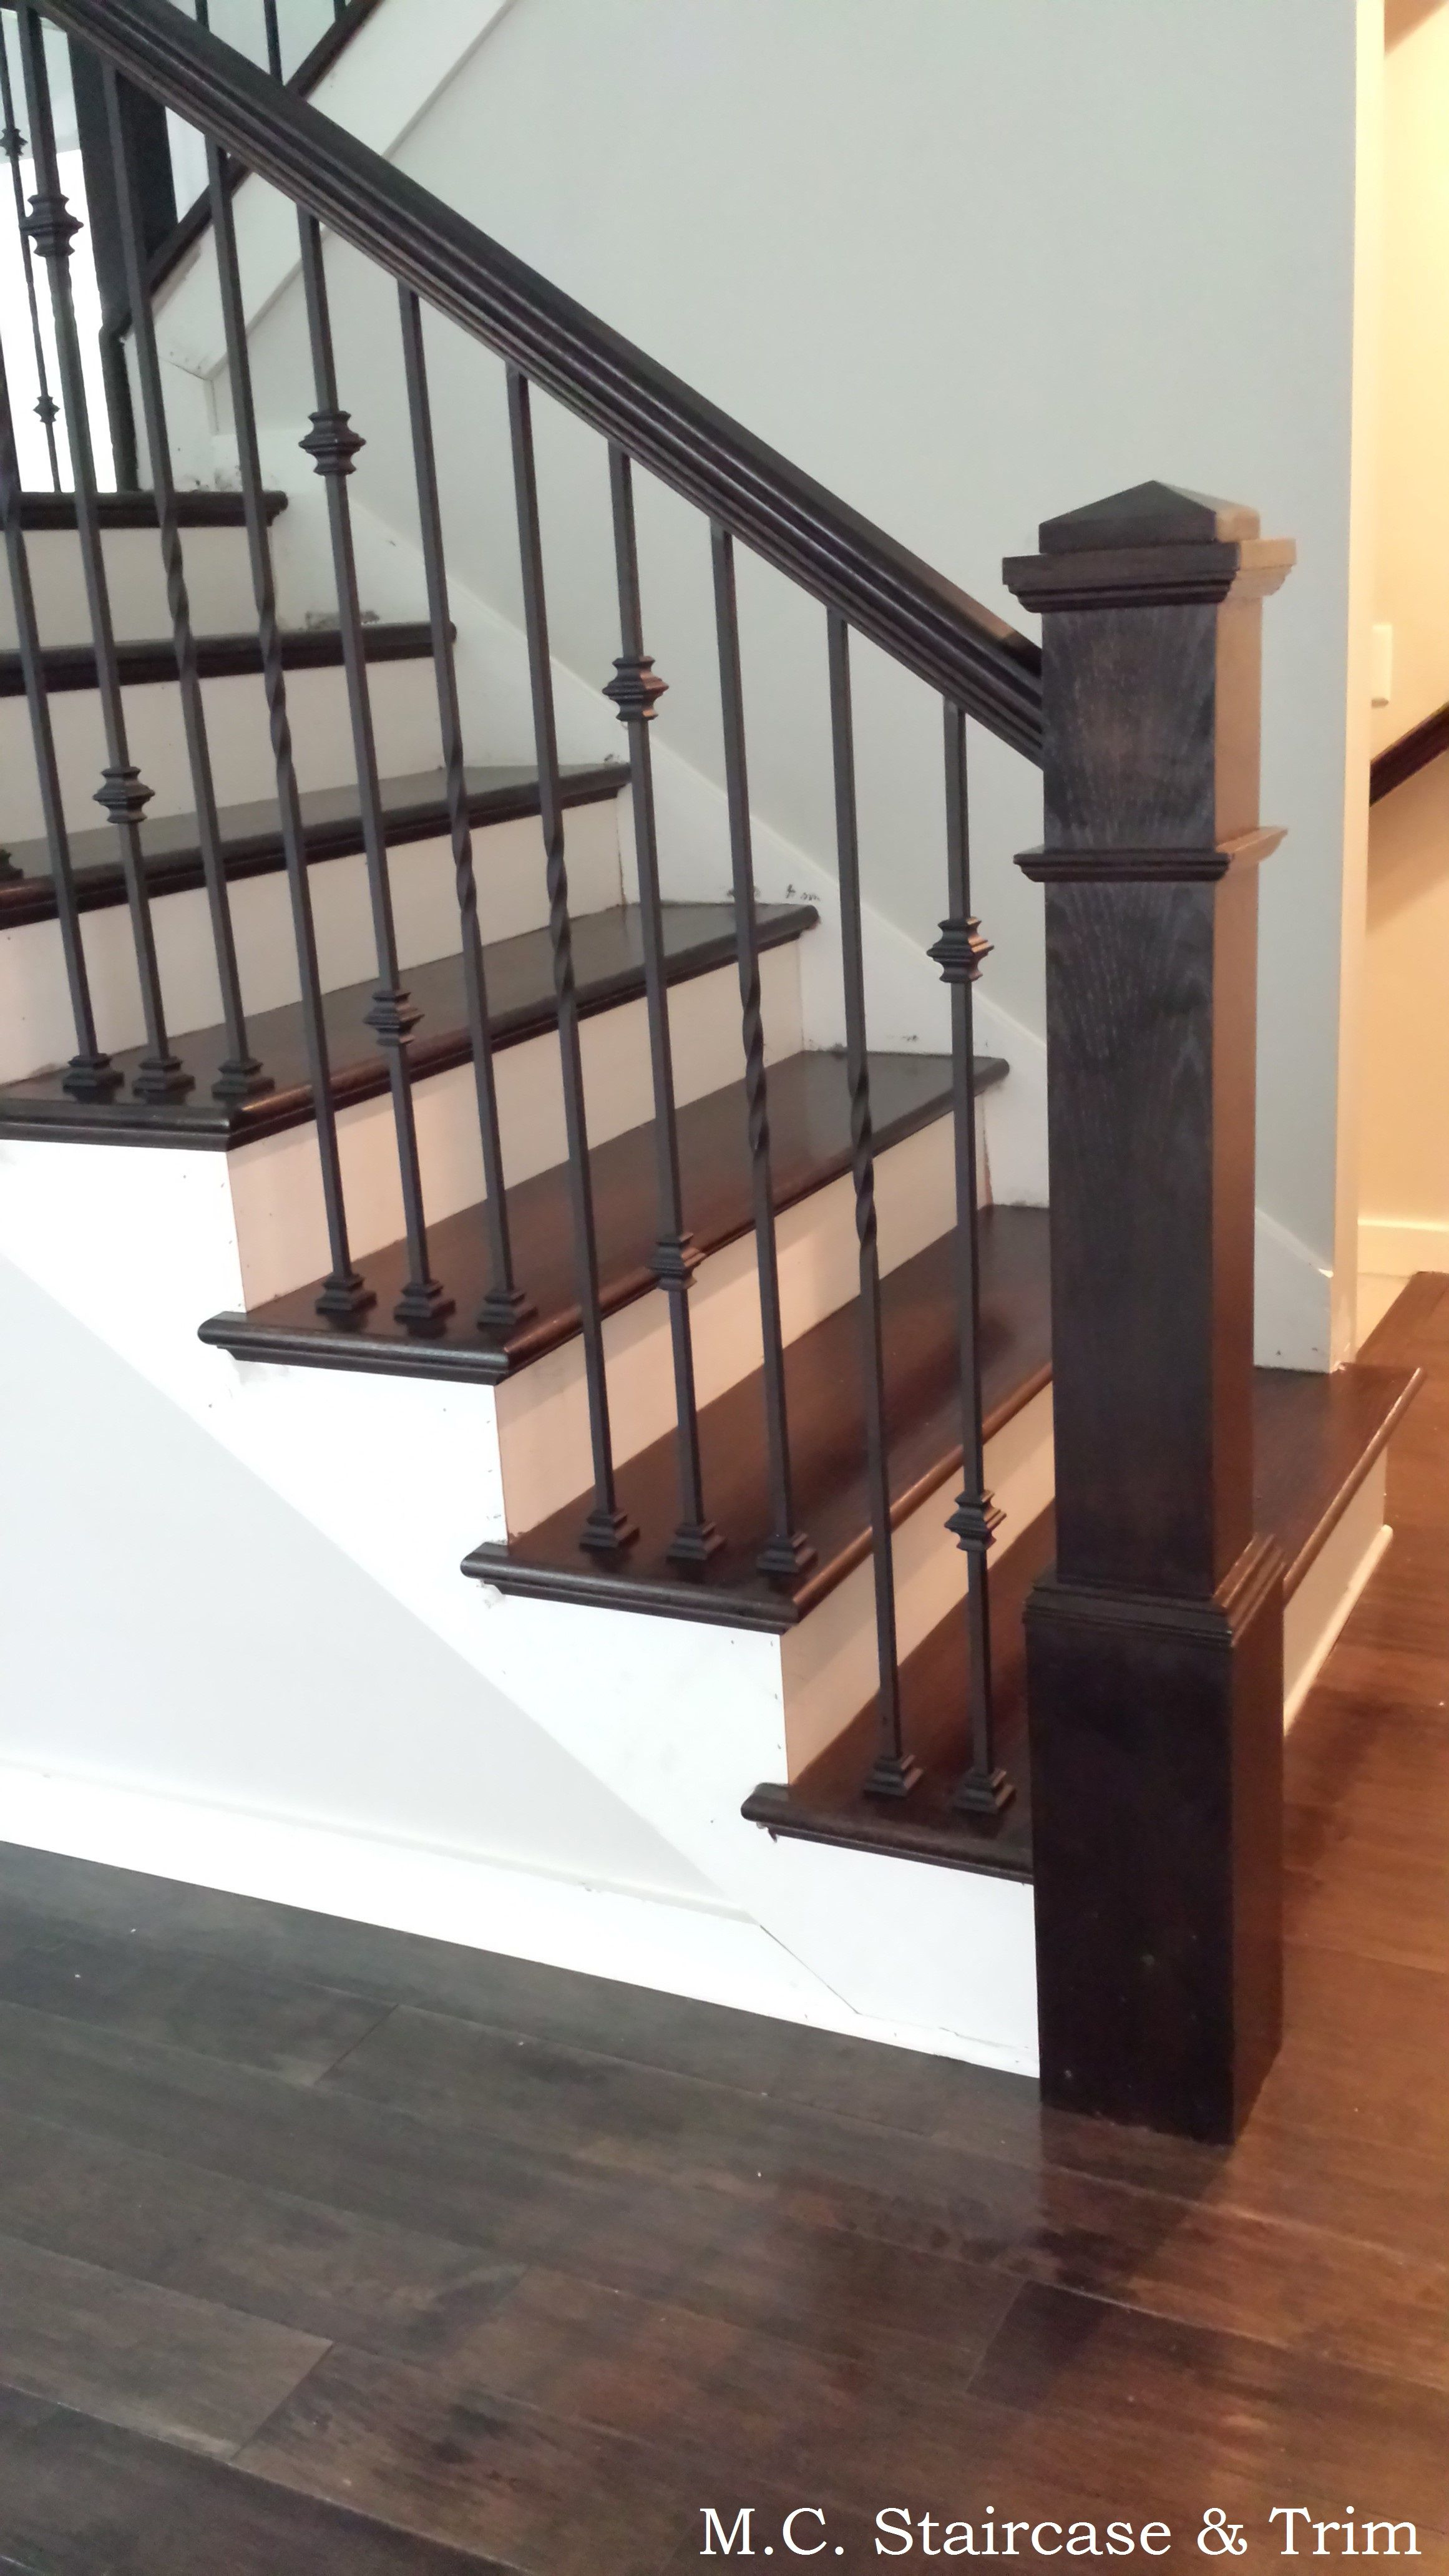 Staircase Remodel From M C Staircase Trim Removal Of Carpet   Wood Metal Stair Railings   2Nd Floor   Stair Bannister   Exterior   Contemporary   Living Room